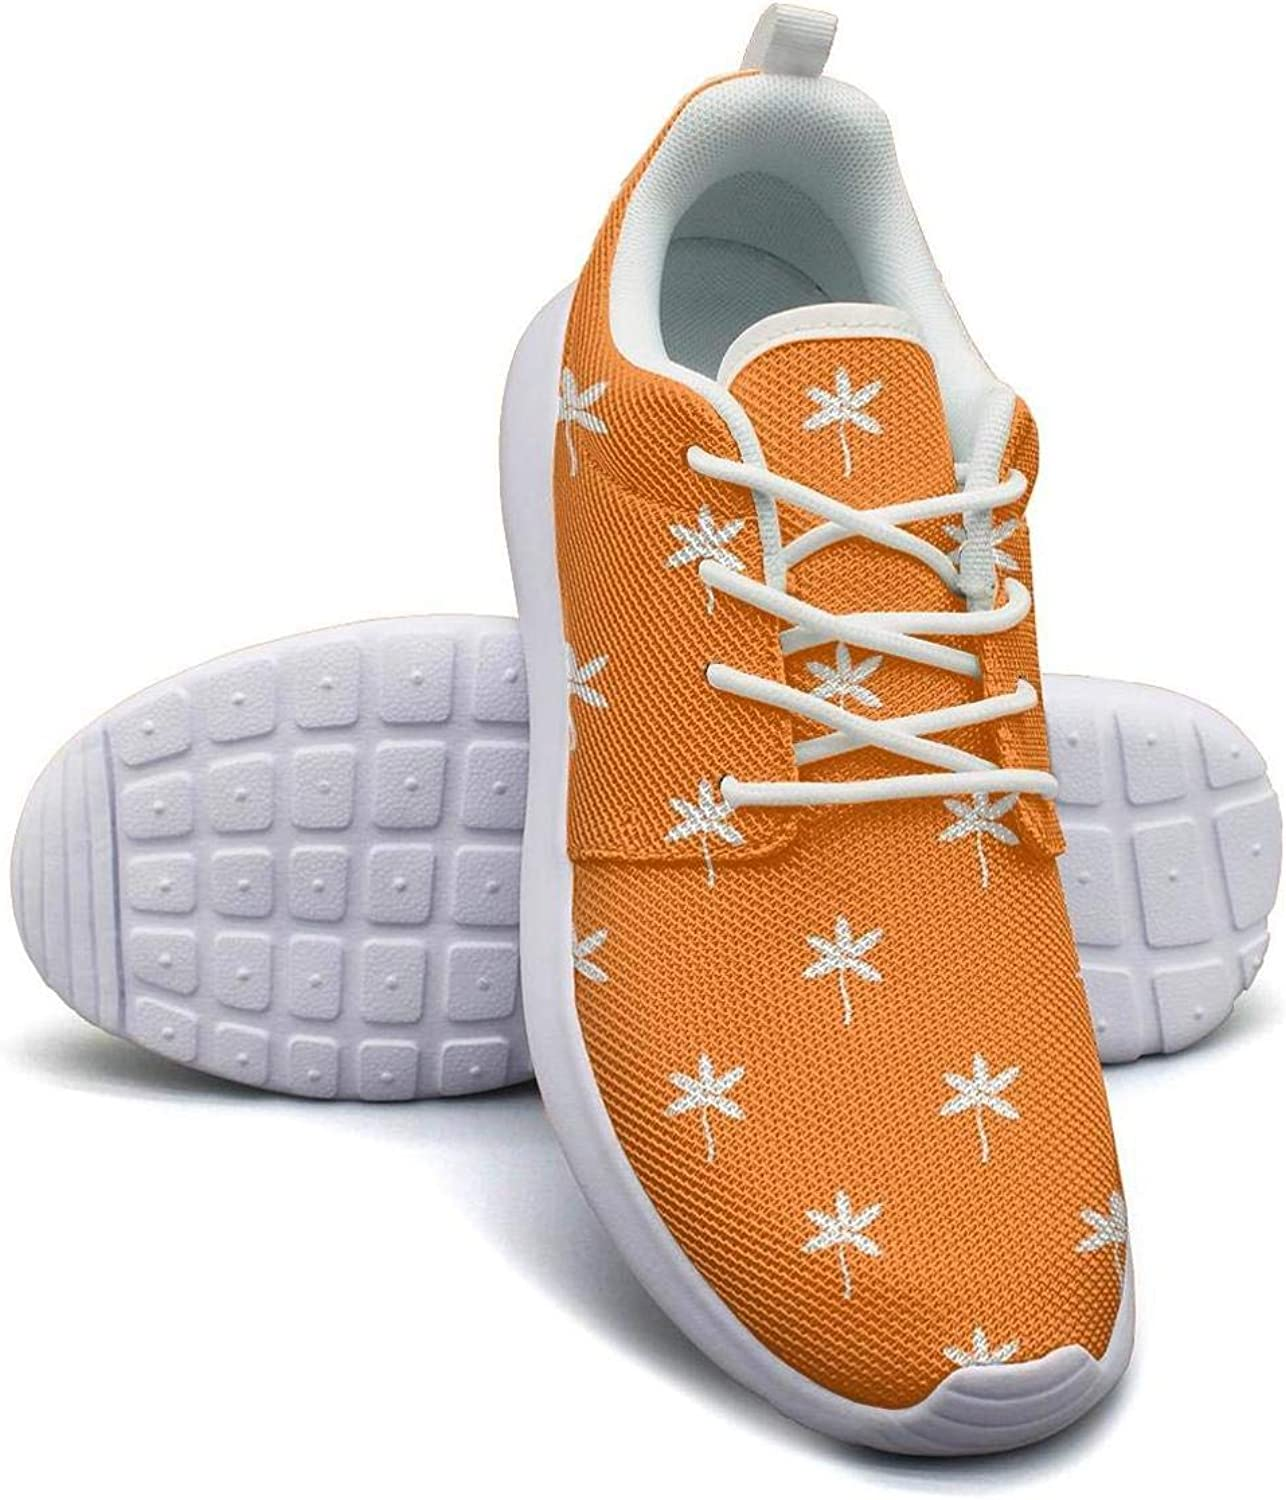 Curved tropical coconut palm tree Walking shoes for Women slip on Wear-Resistant Running shoes For Girls